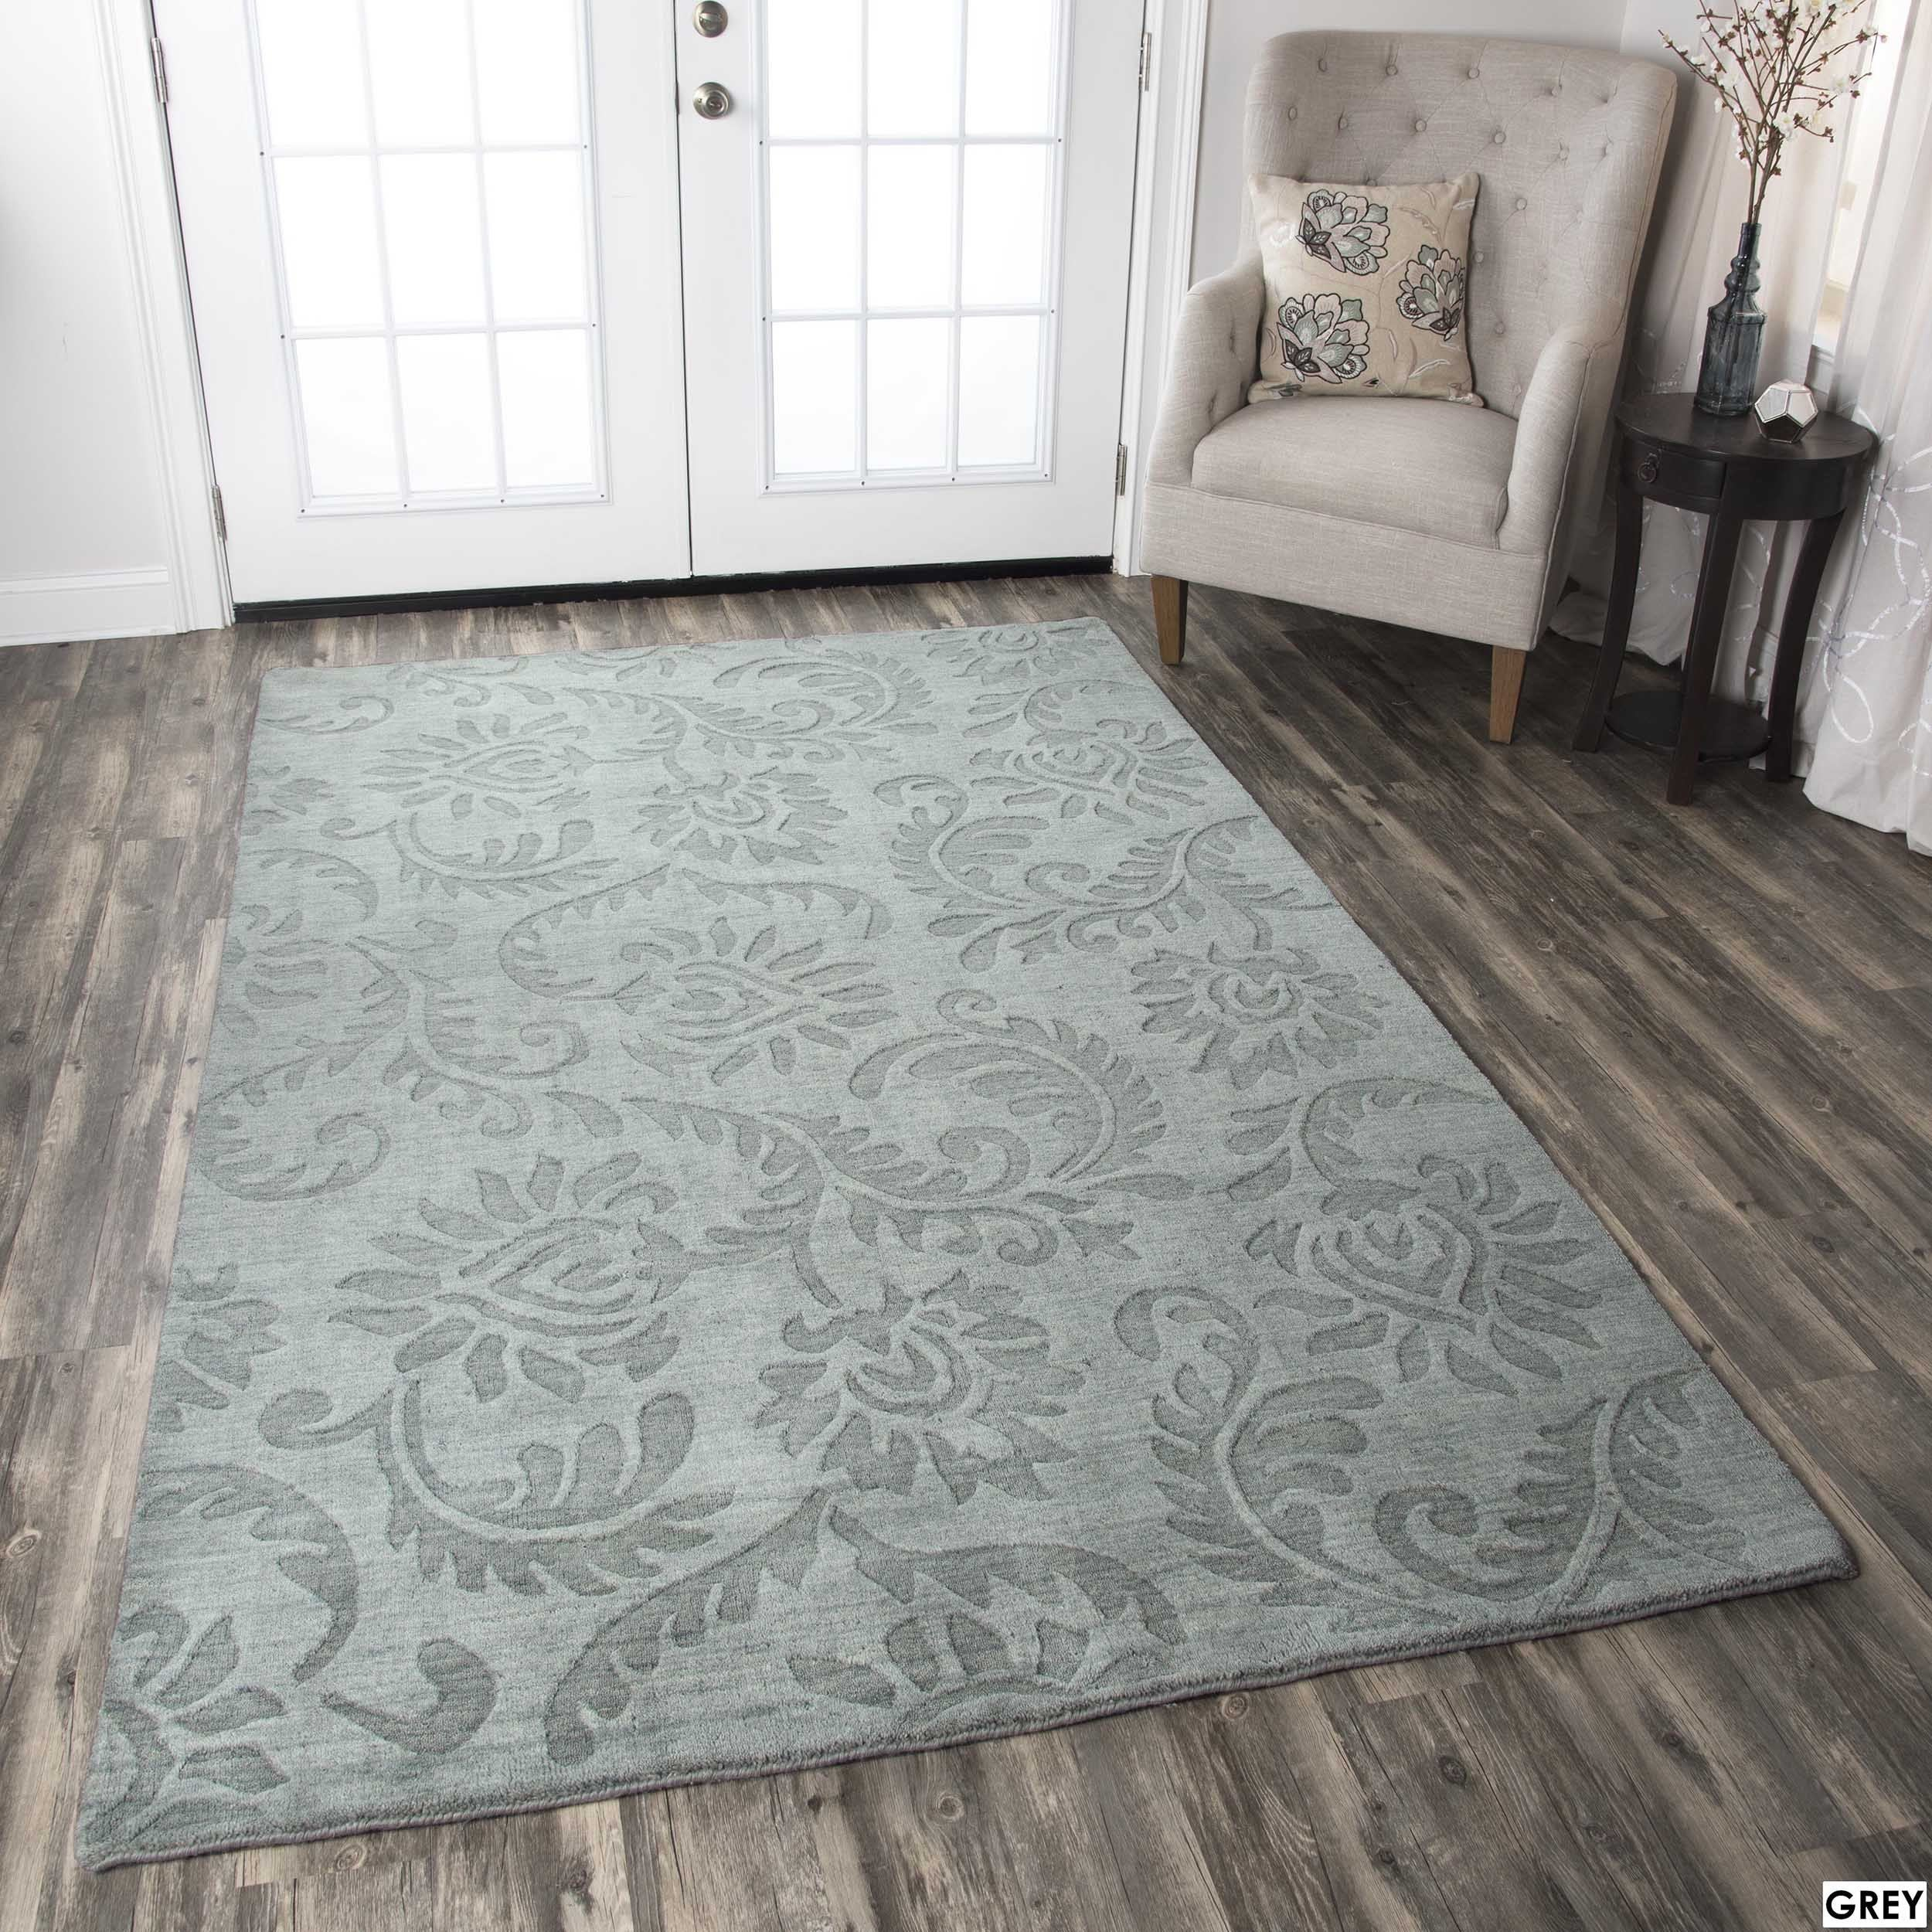 Rizzy Home Uptown Collection Handmade Solid Wool Grey Rust Rug  # Muebles Mio Colombia